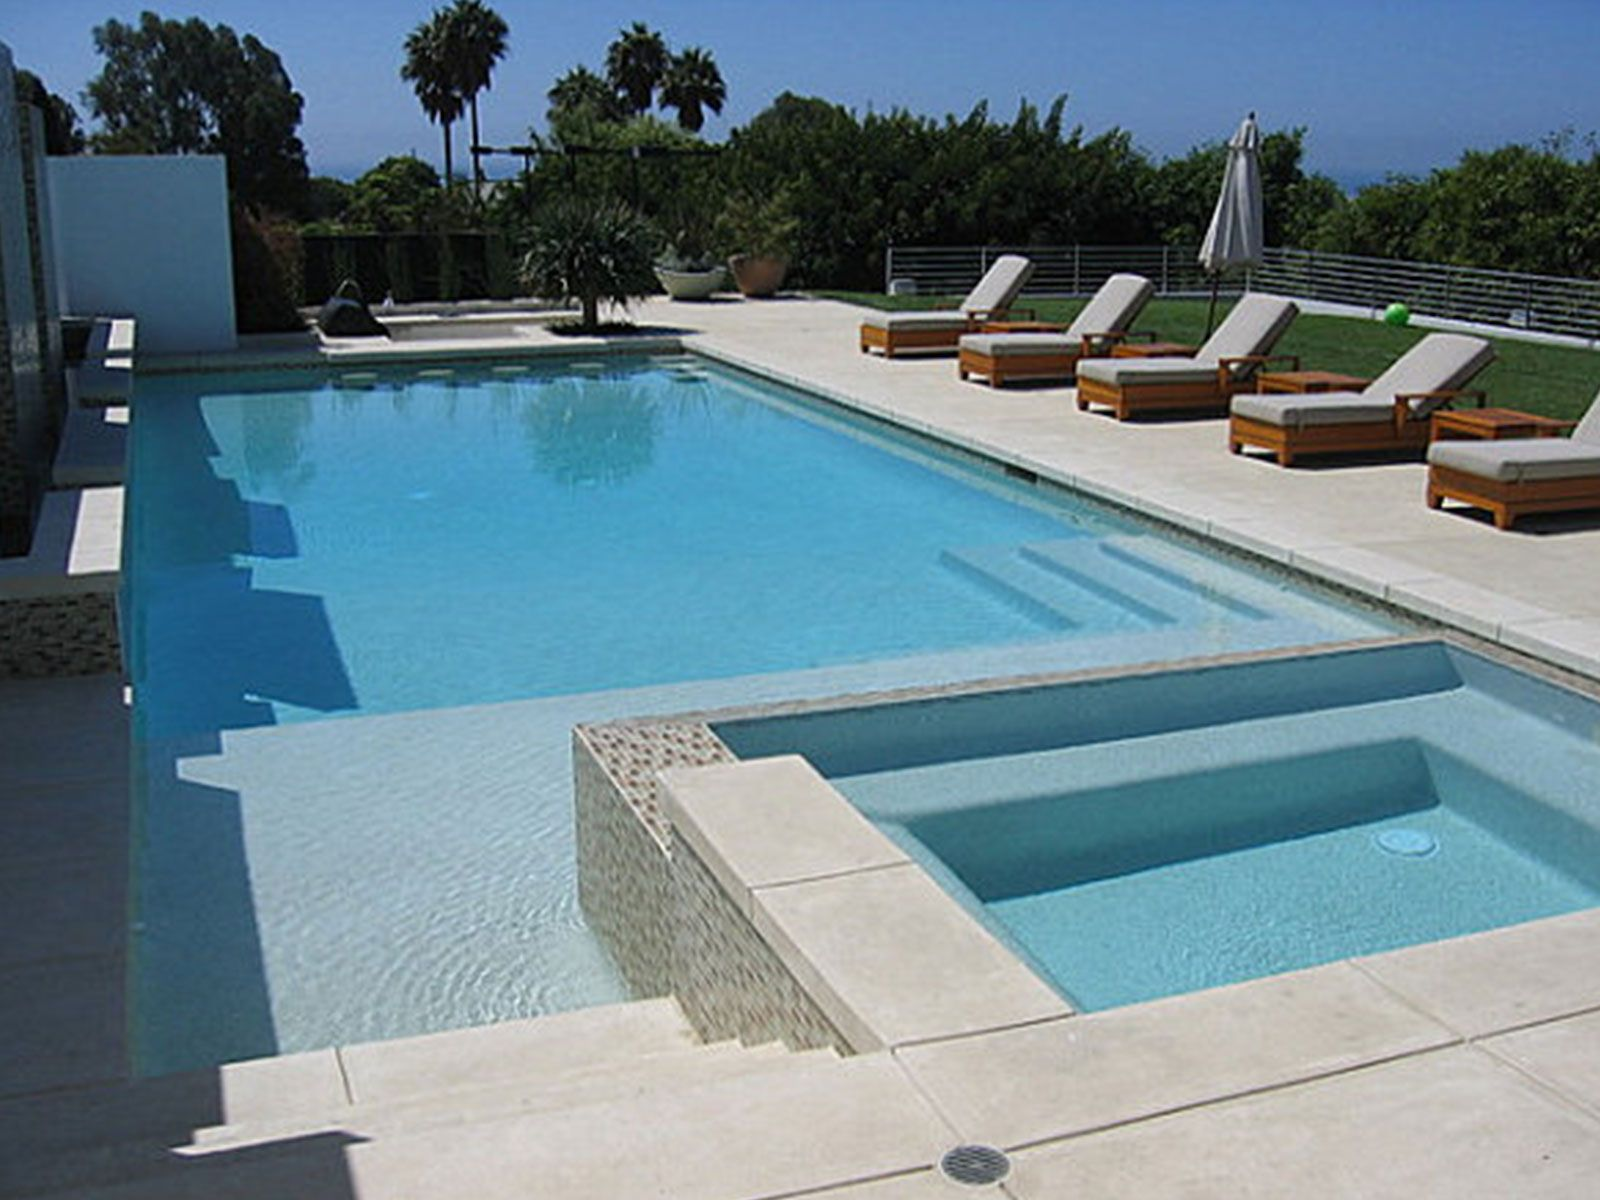 simple swimming pool design image modern creative swimming modern swimming pools and spas - Modern Swimming Pool Designs